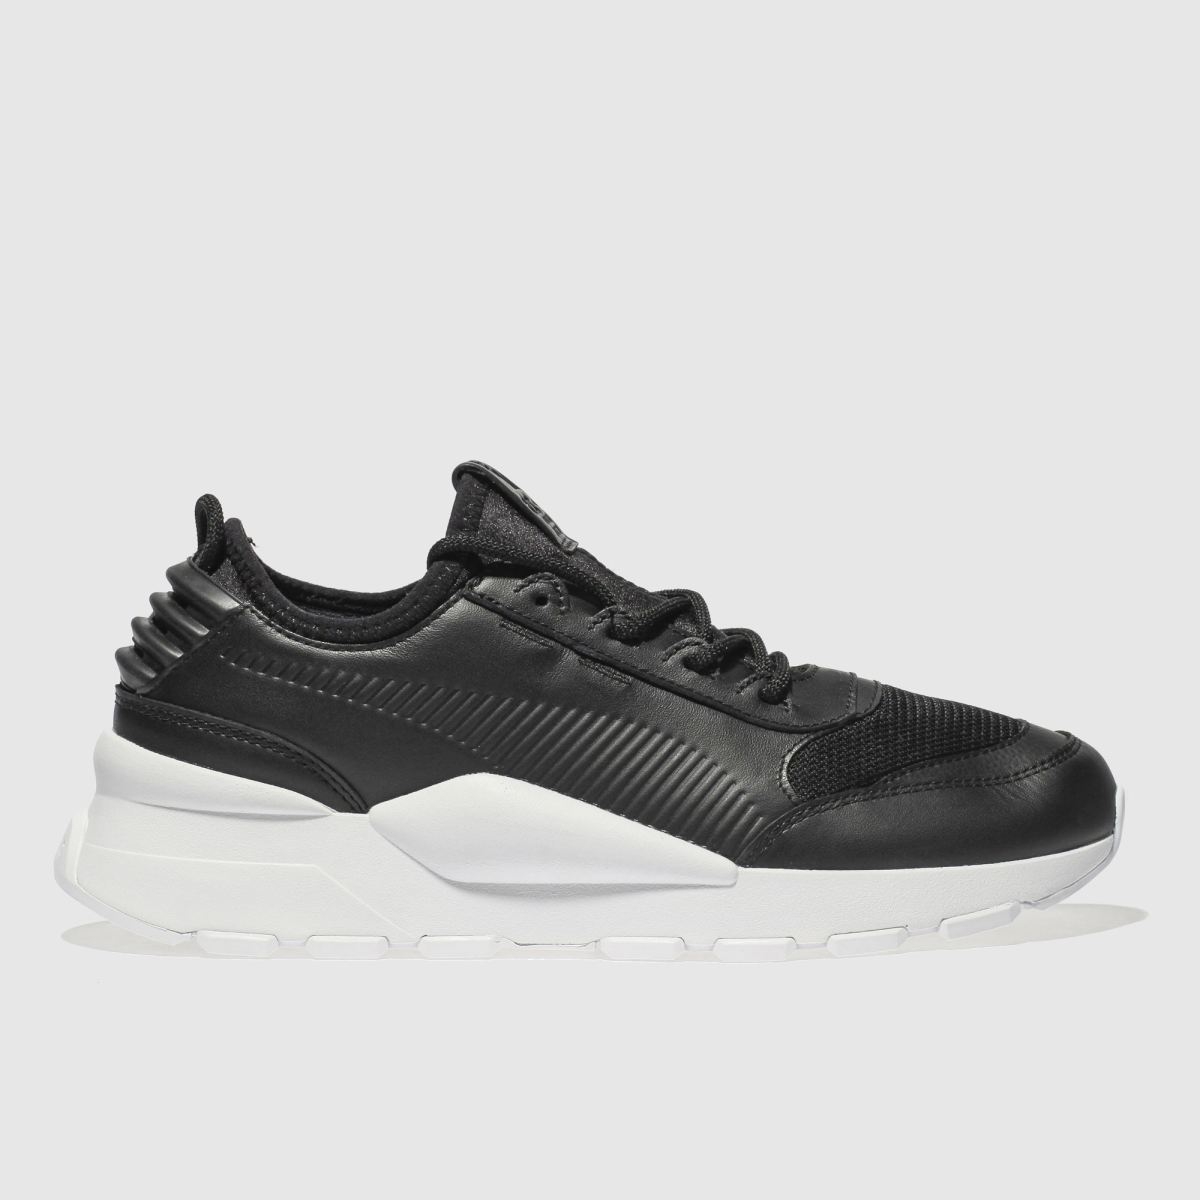 Puma Black Rs-0 Trainers